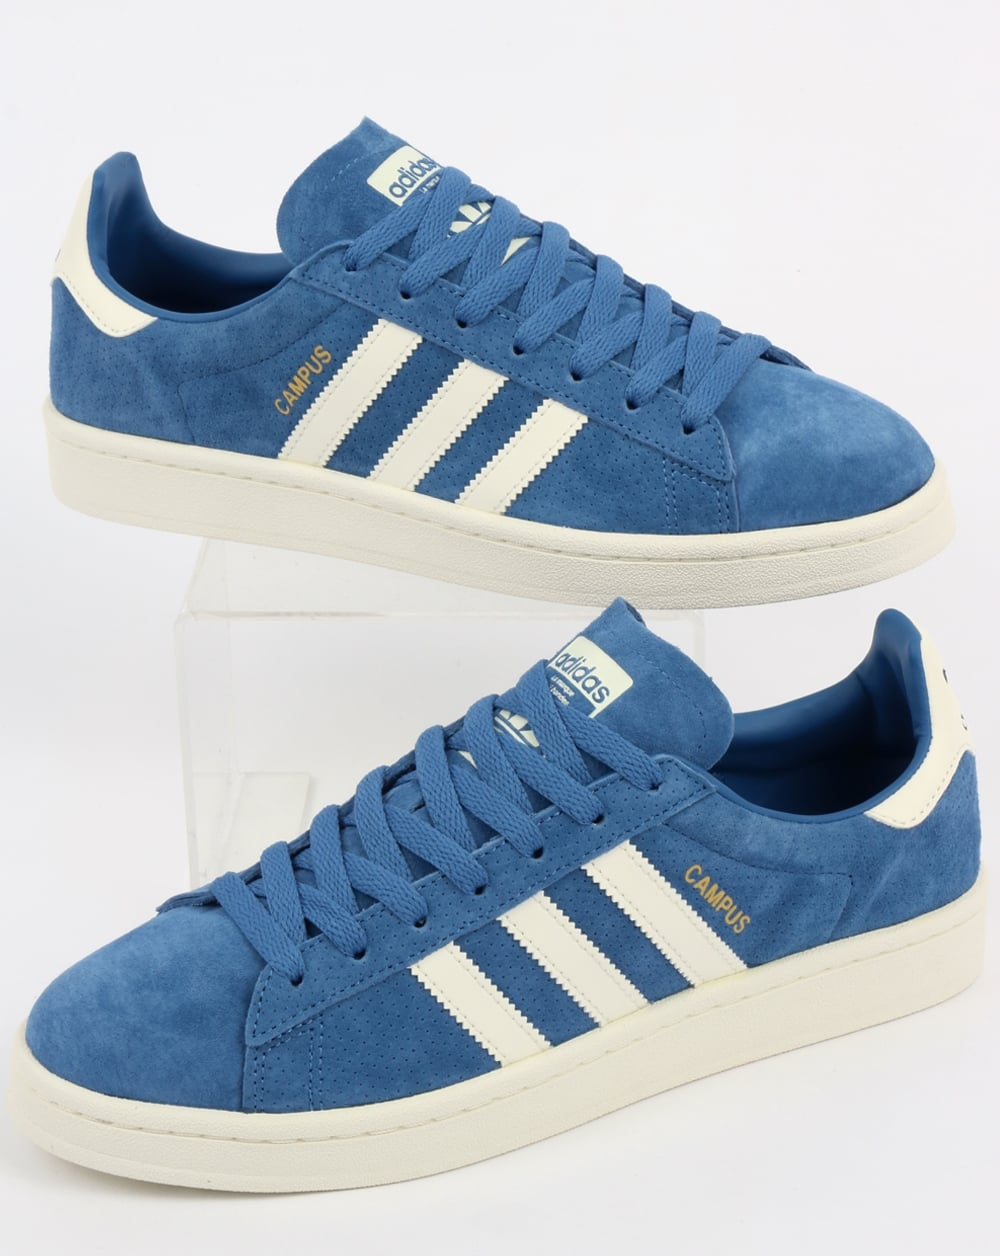 2528d6f42fc5 adidas Trainers Adidas Campus Trainers Trace Royal Off White